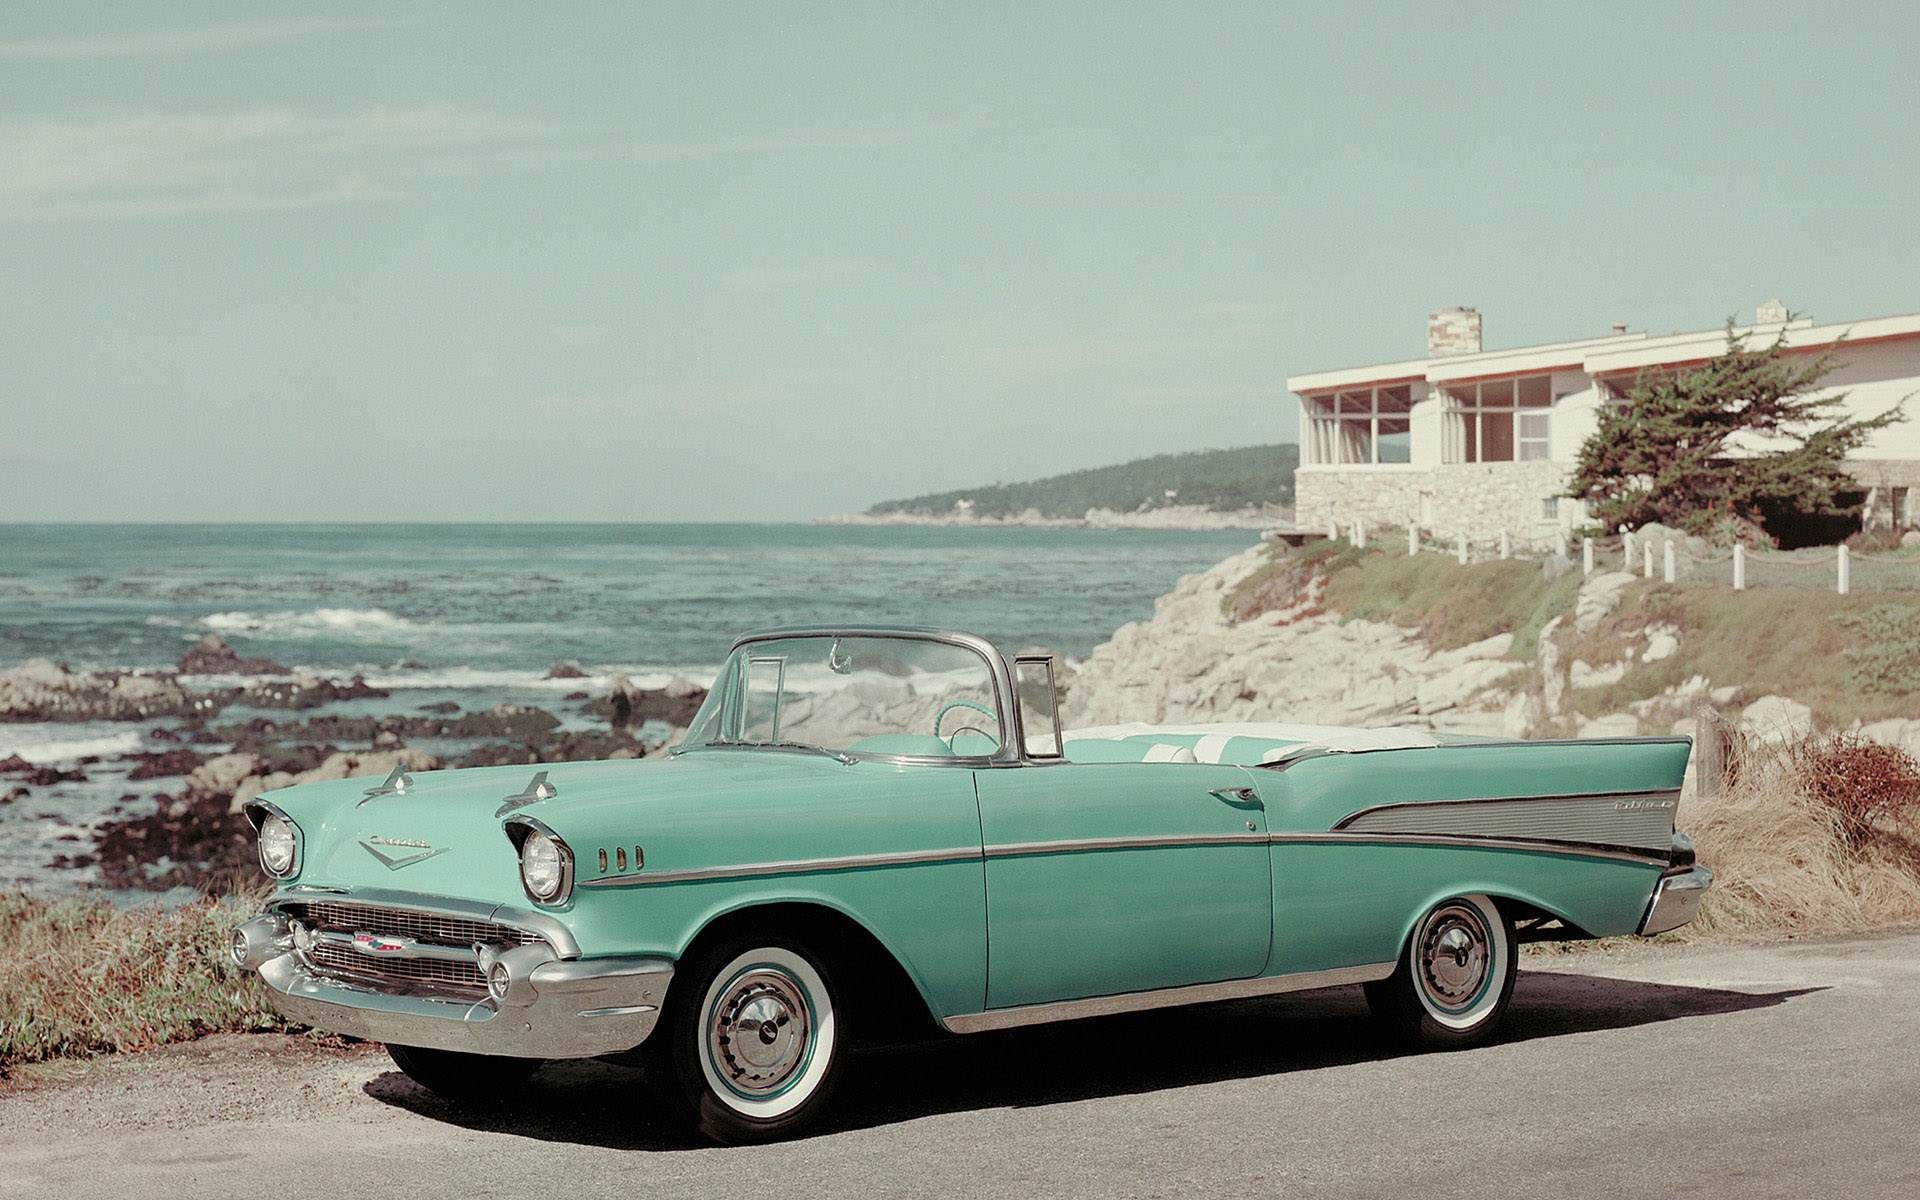 Chevrolet | Classic Cars | Pinterest | Chevrolet and Cars